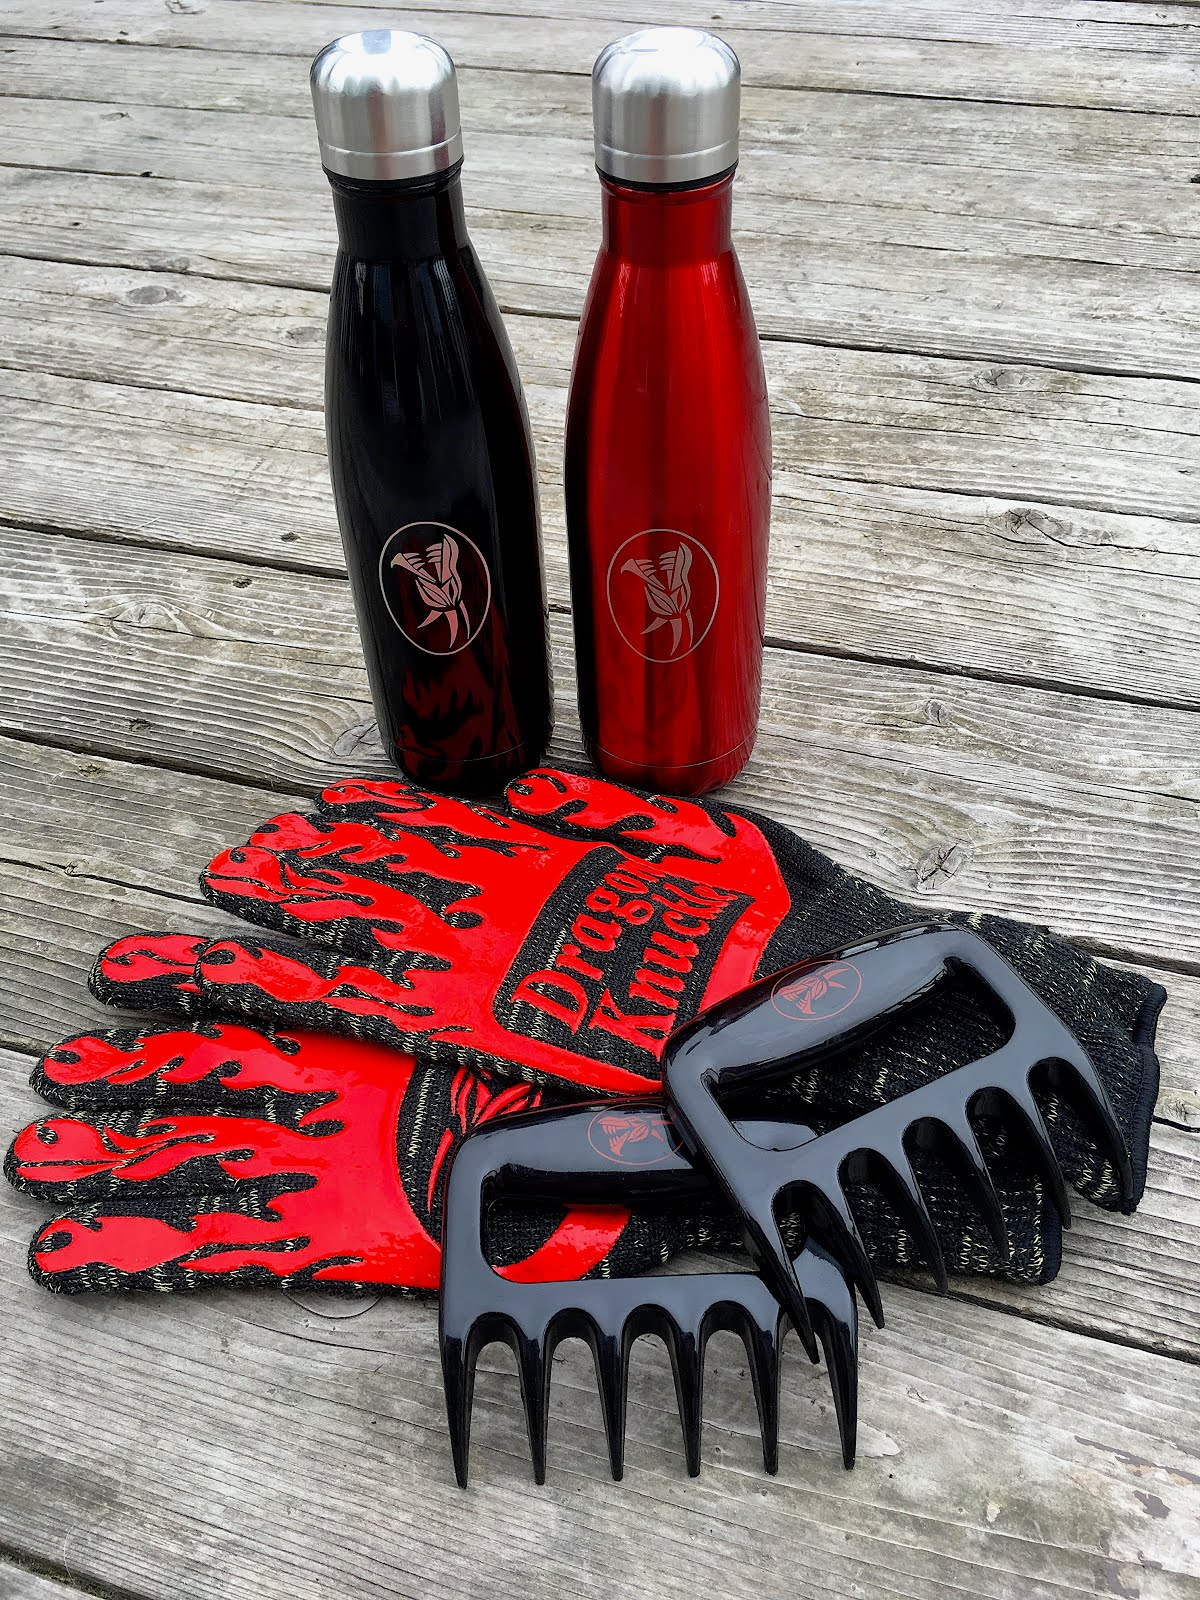 Our Stainless Steel Water Bottles, BBQ Gloves and Shredder Claws